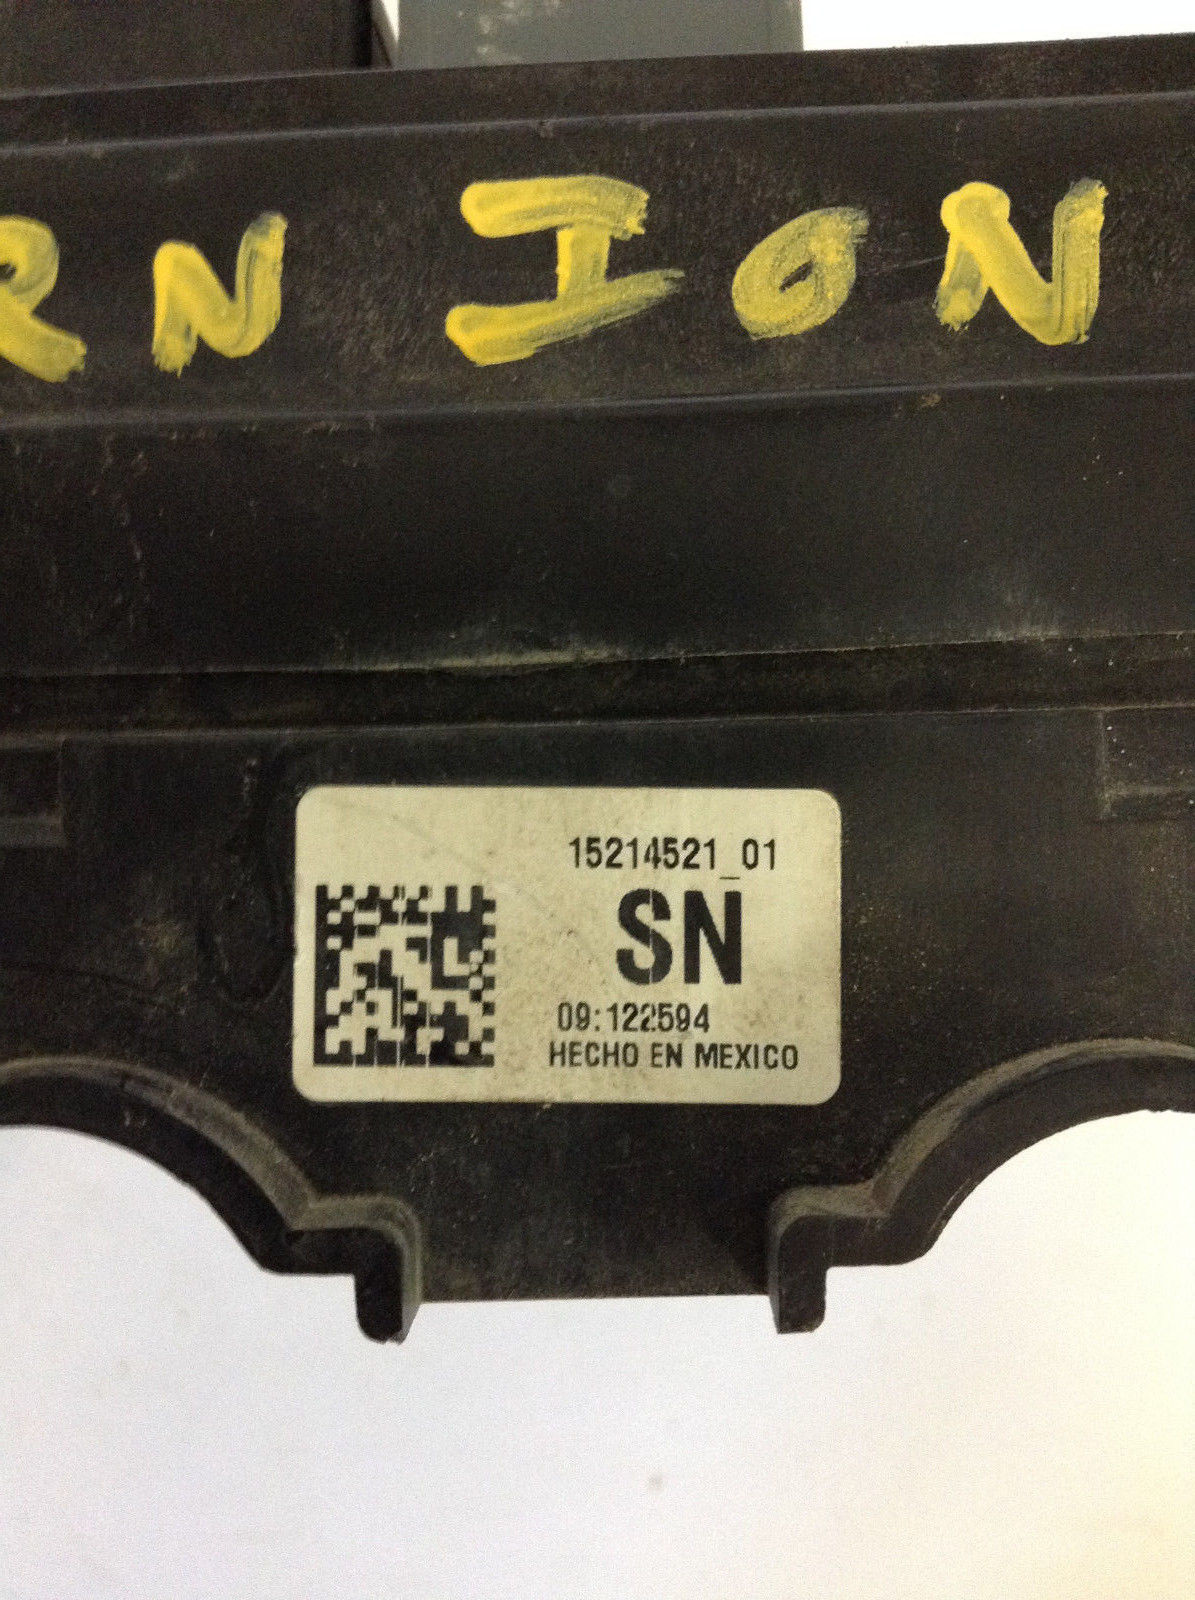 Marvelous Saturn Ion 3 Fuse Box Images - Best Image Engine - guigou.us